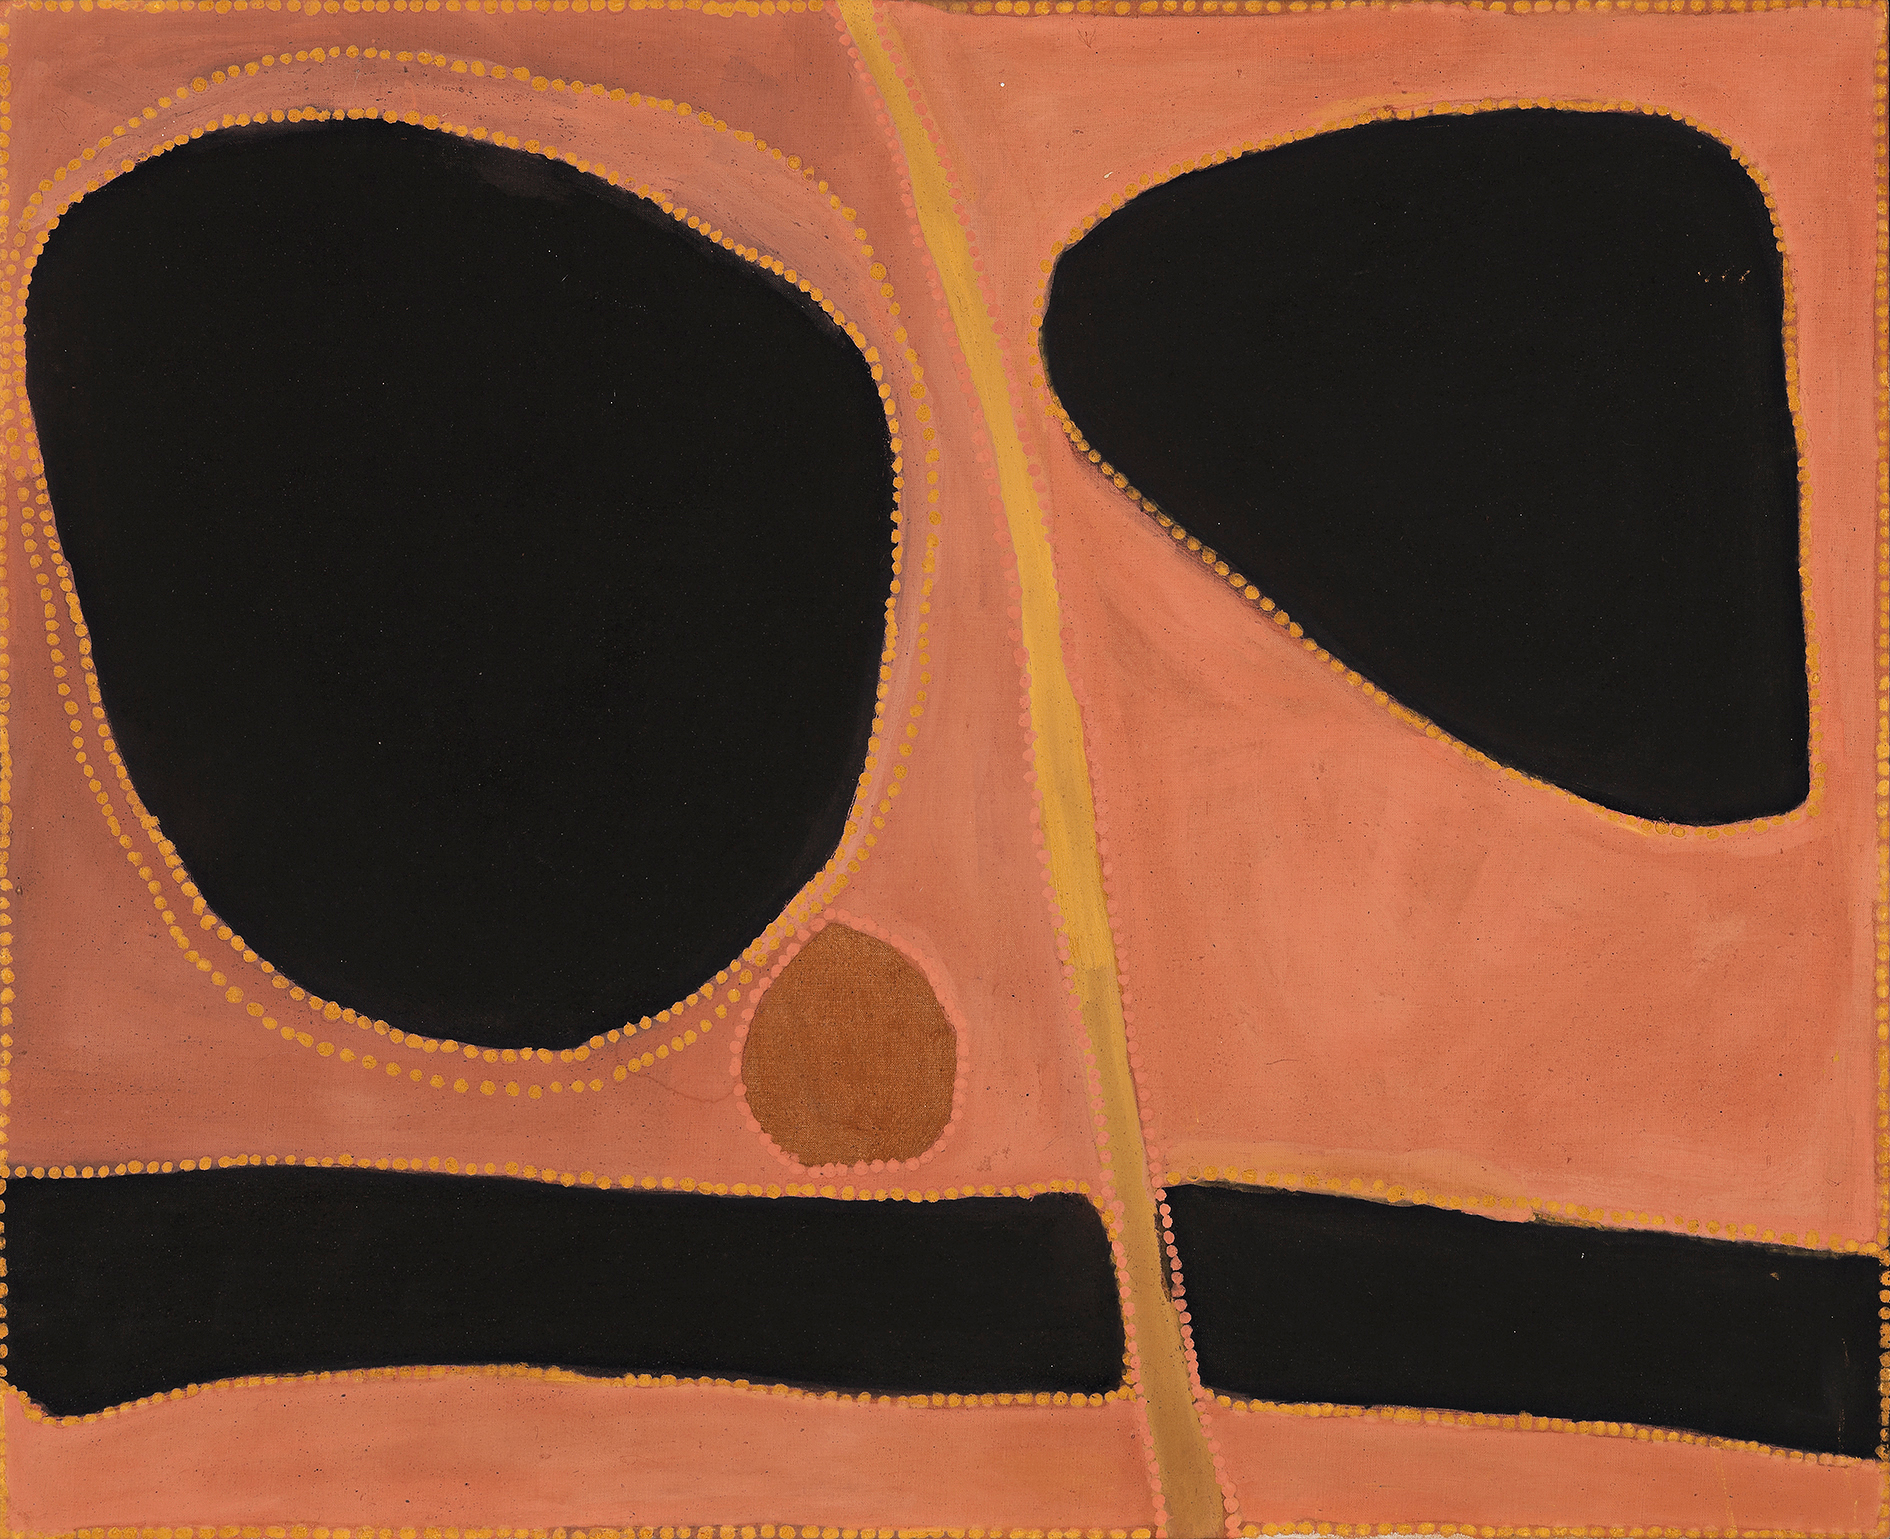 Rover Thomas,  Djugamerri and Bolgumerri  1991 from the Laverty Collection, sold for $317,200 IBP at D+H, April 2017